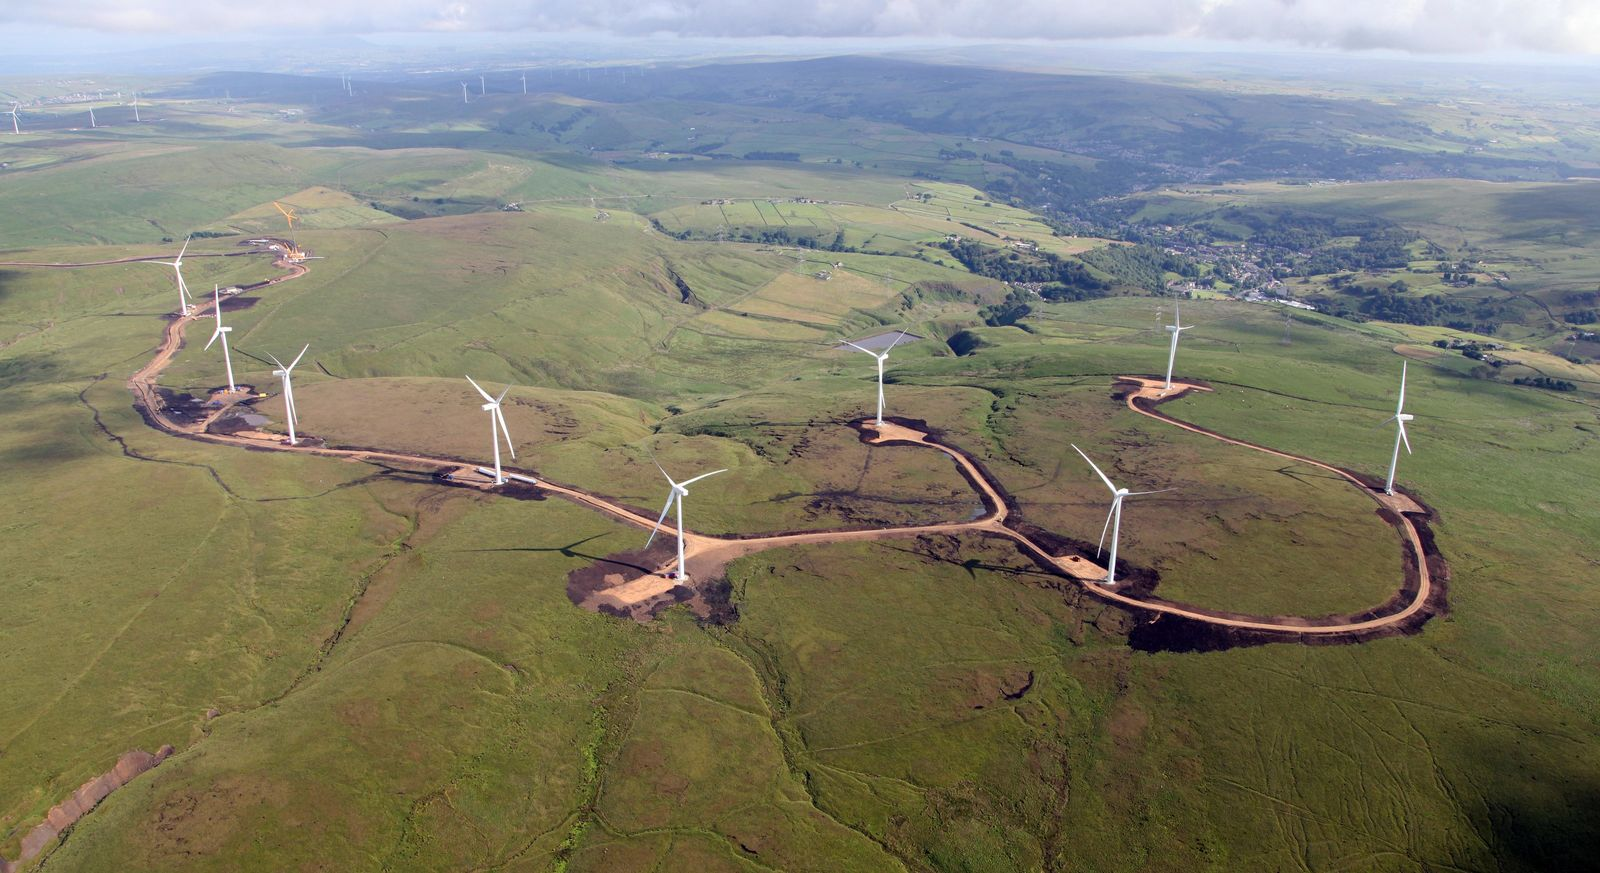 Infrastructure for wind farms has resulted in habitat modification or clearing due to the need for ...